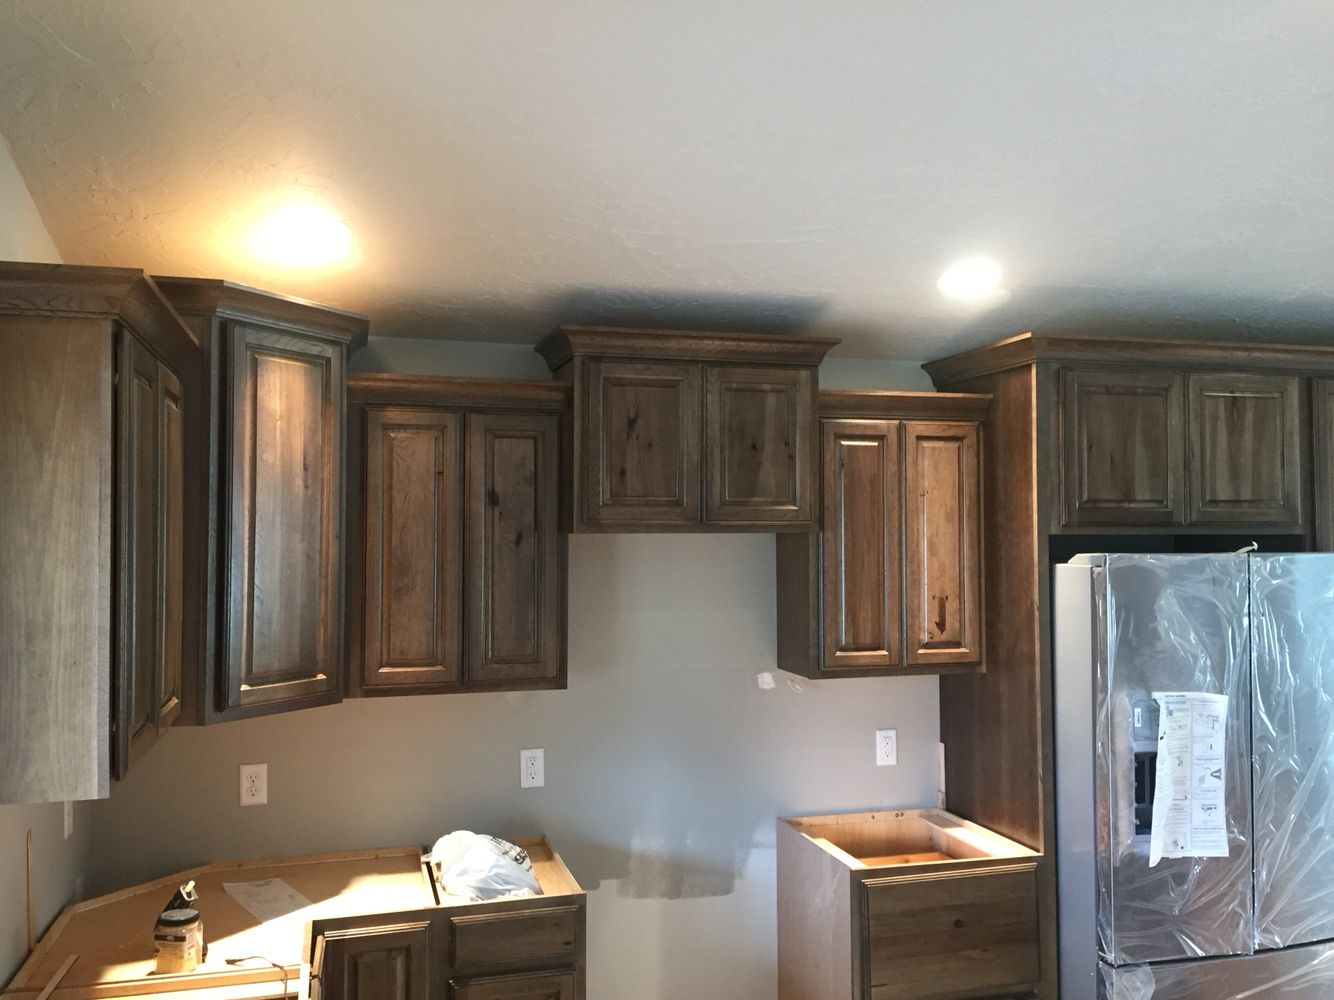 Dark Stain Hickory Cabinets With Crown Moulding Hickory Kitchen Cabinets Hickory Cabinets Stained Kitchen Cabinets